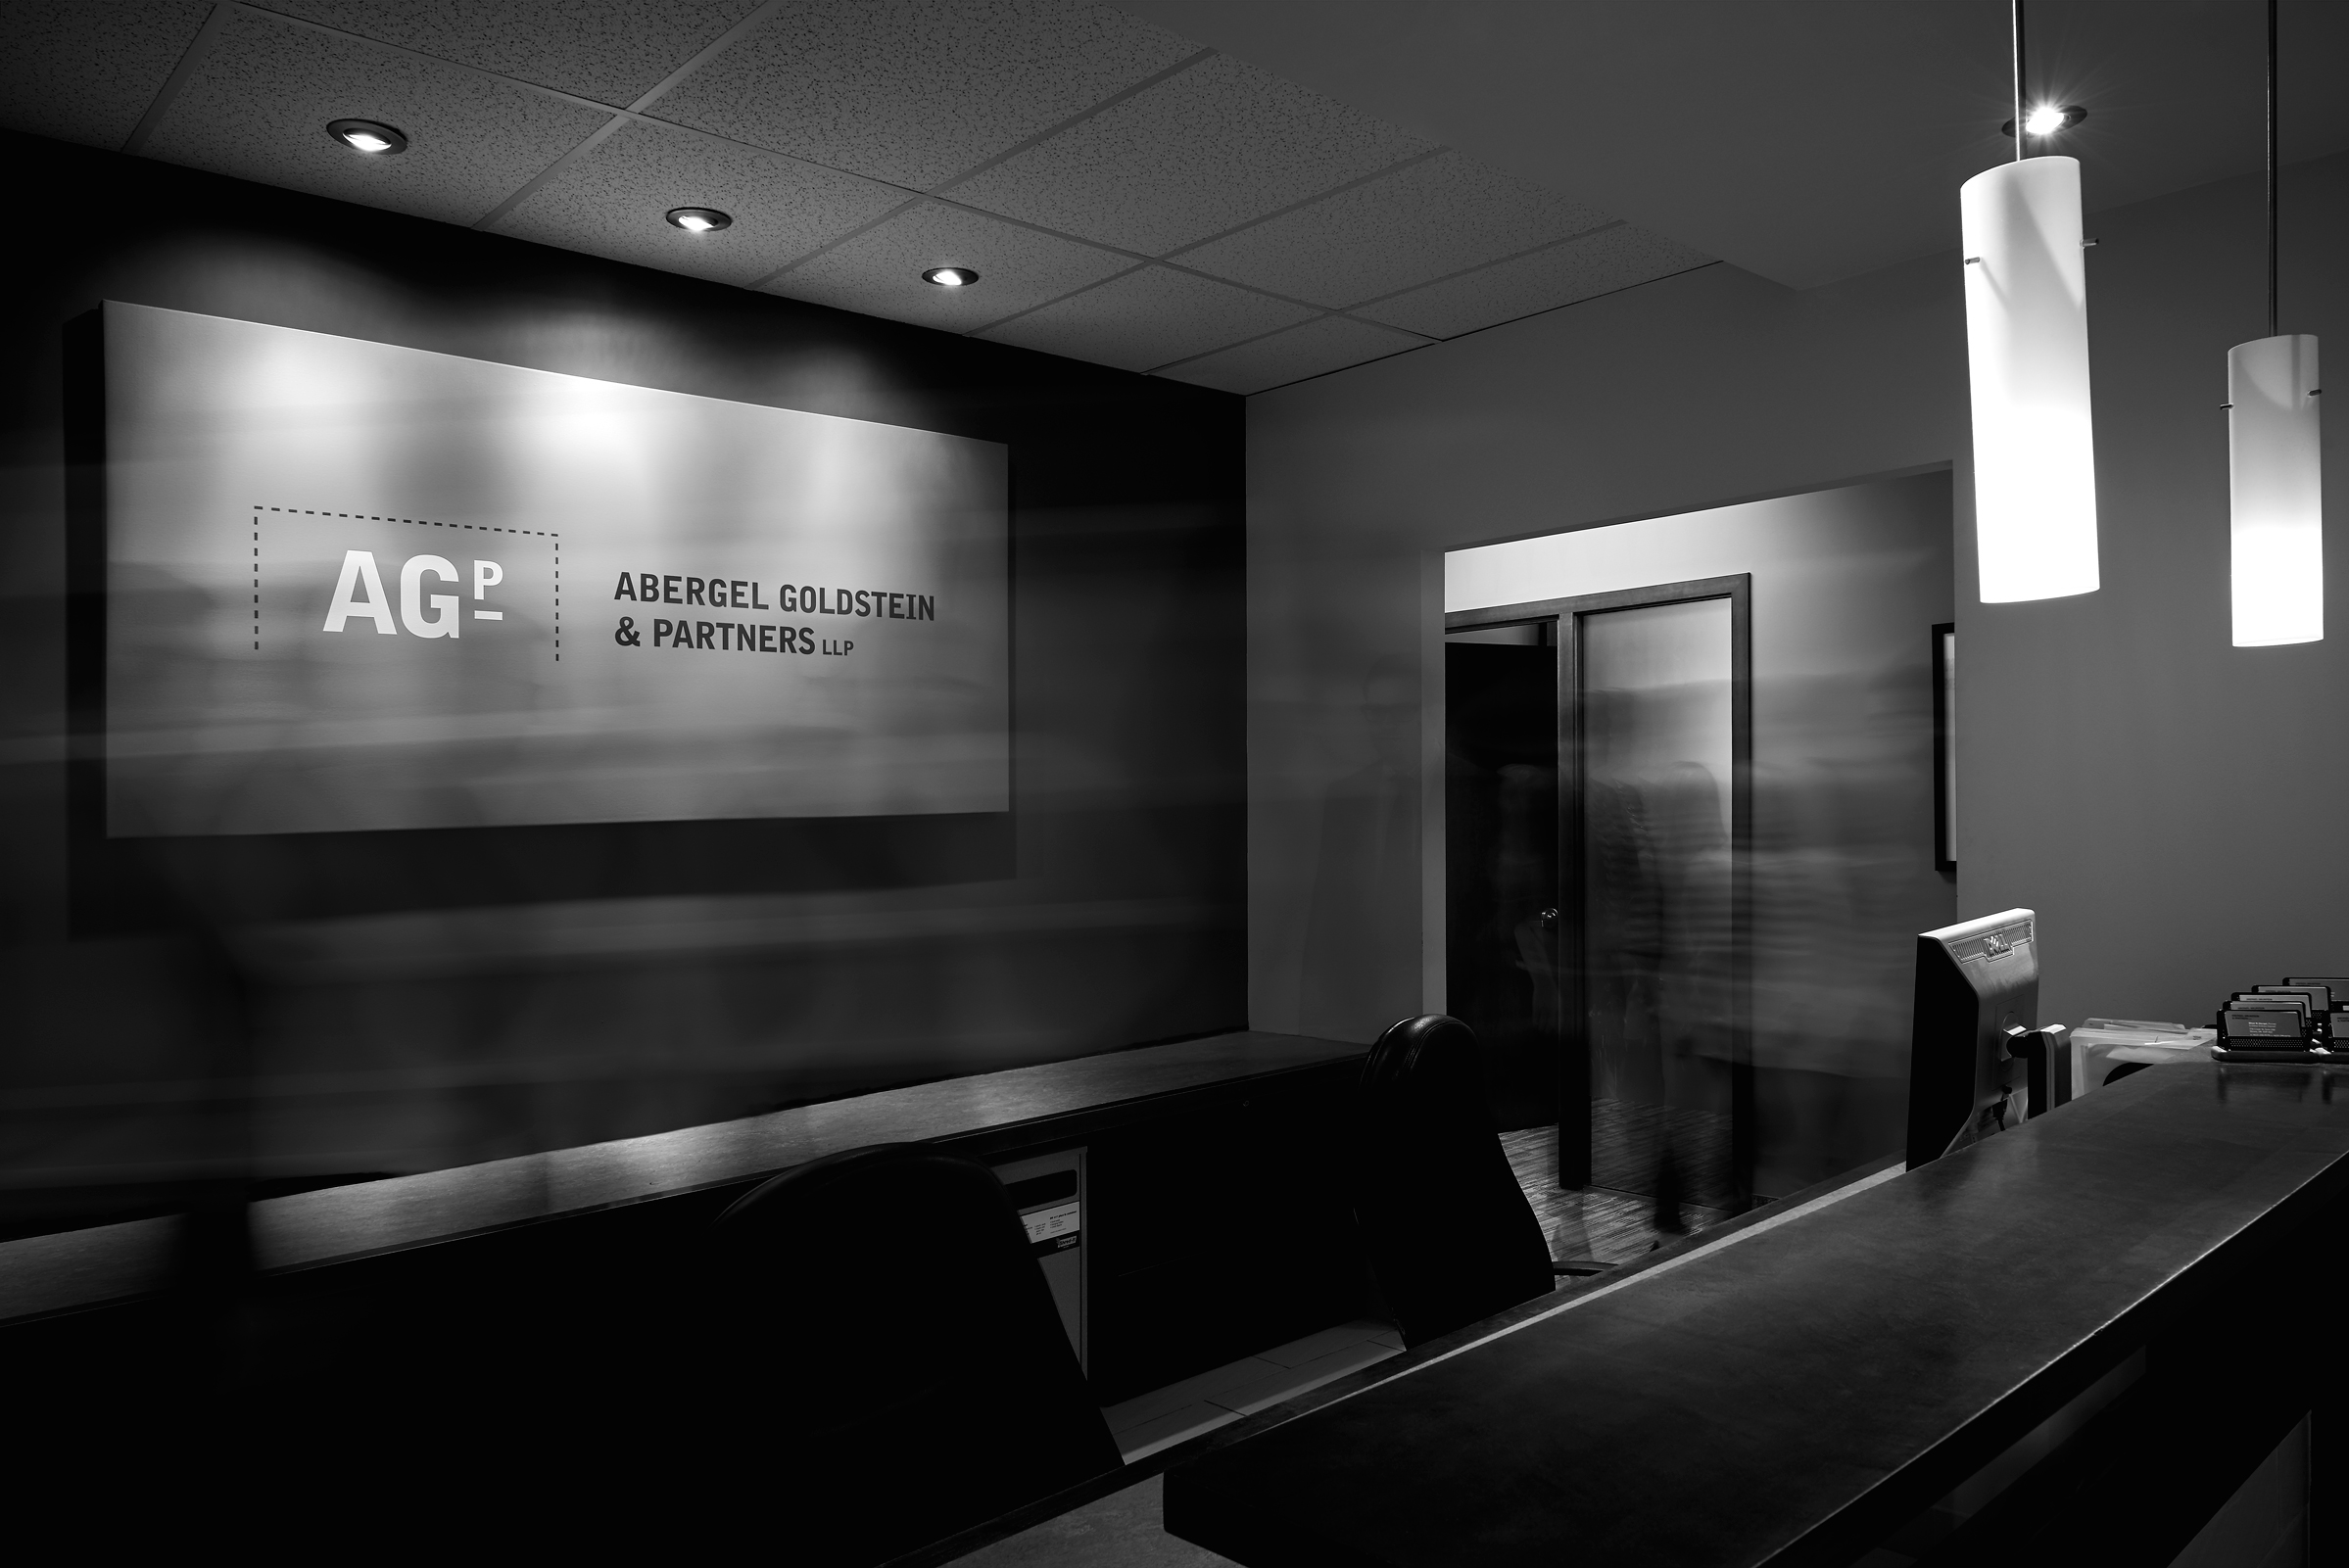 Signage for Abergel Goldstein & Partners, an Ottawa law firm, by Graphic Designer idApostle